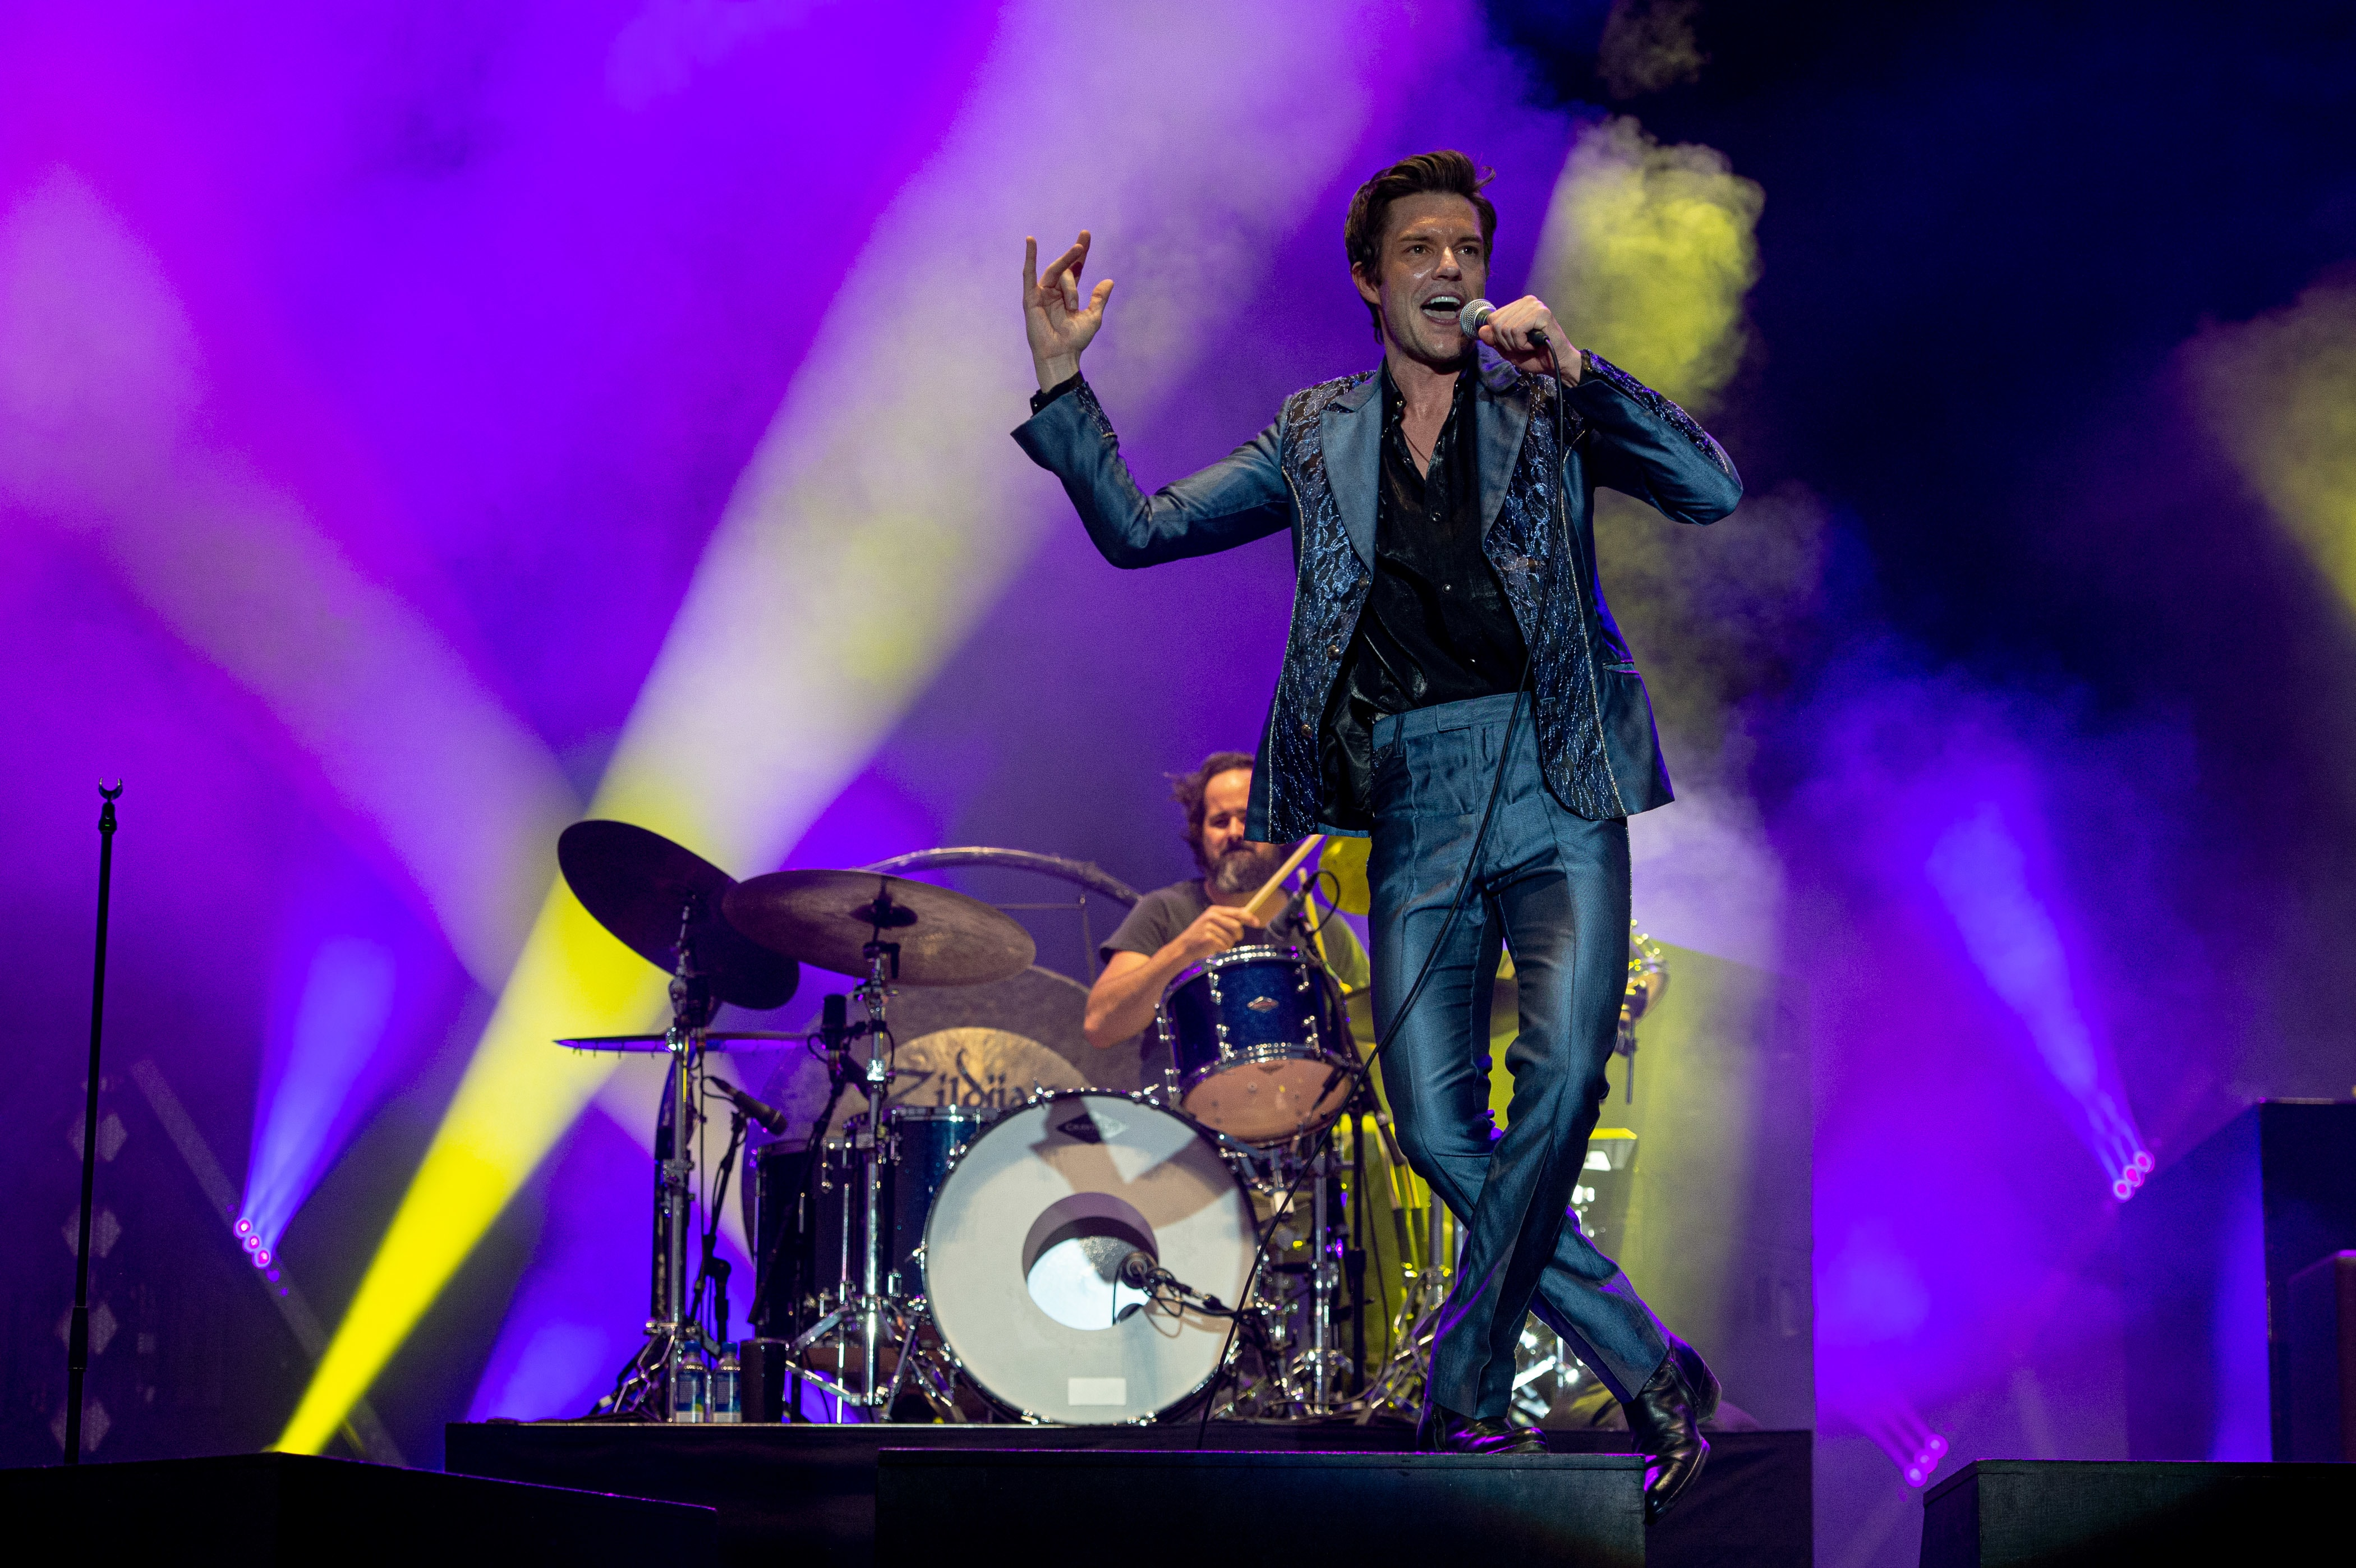 'Tonight is for Ric': The Killers pay tribute to The Cars frontman at Pilgrimage